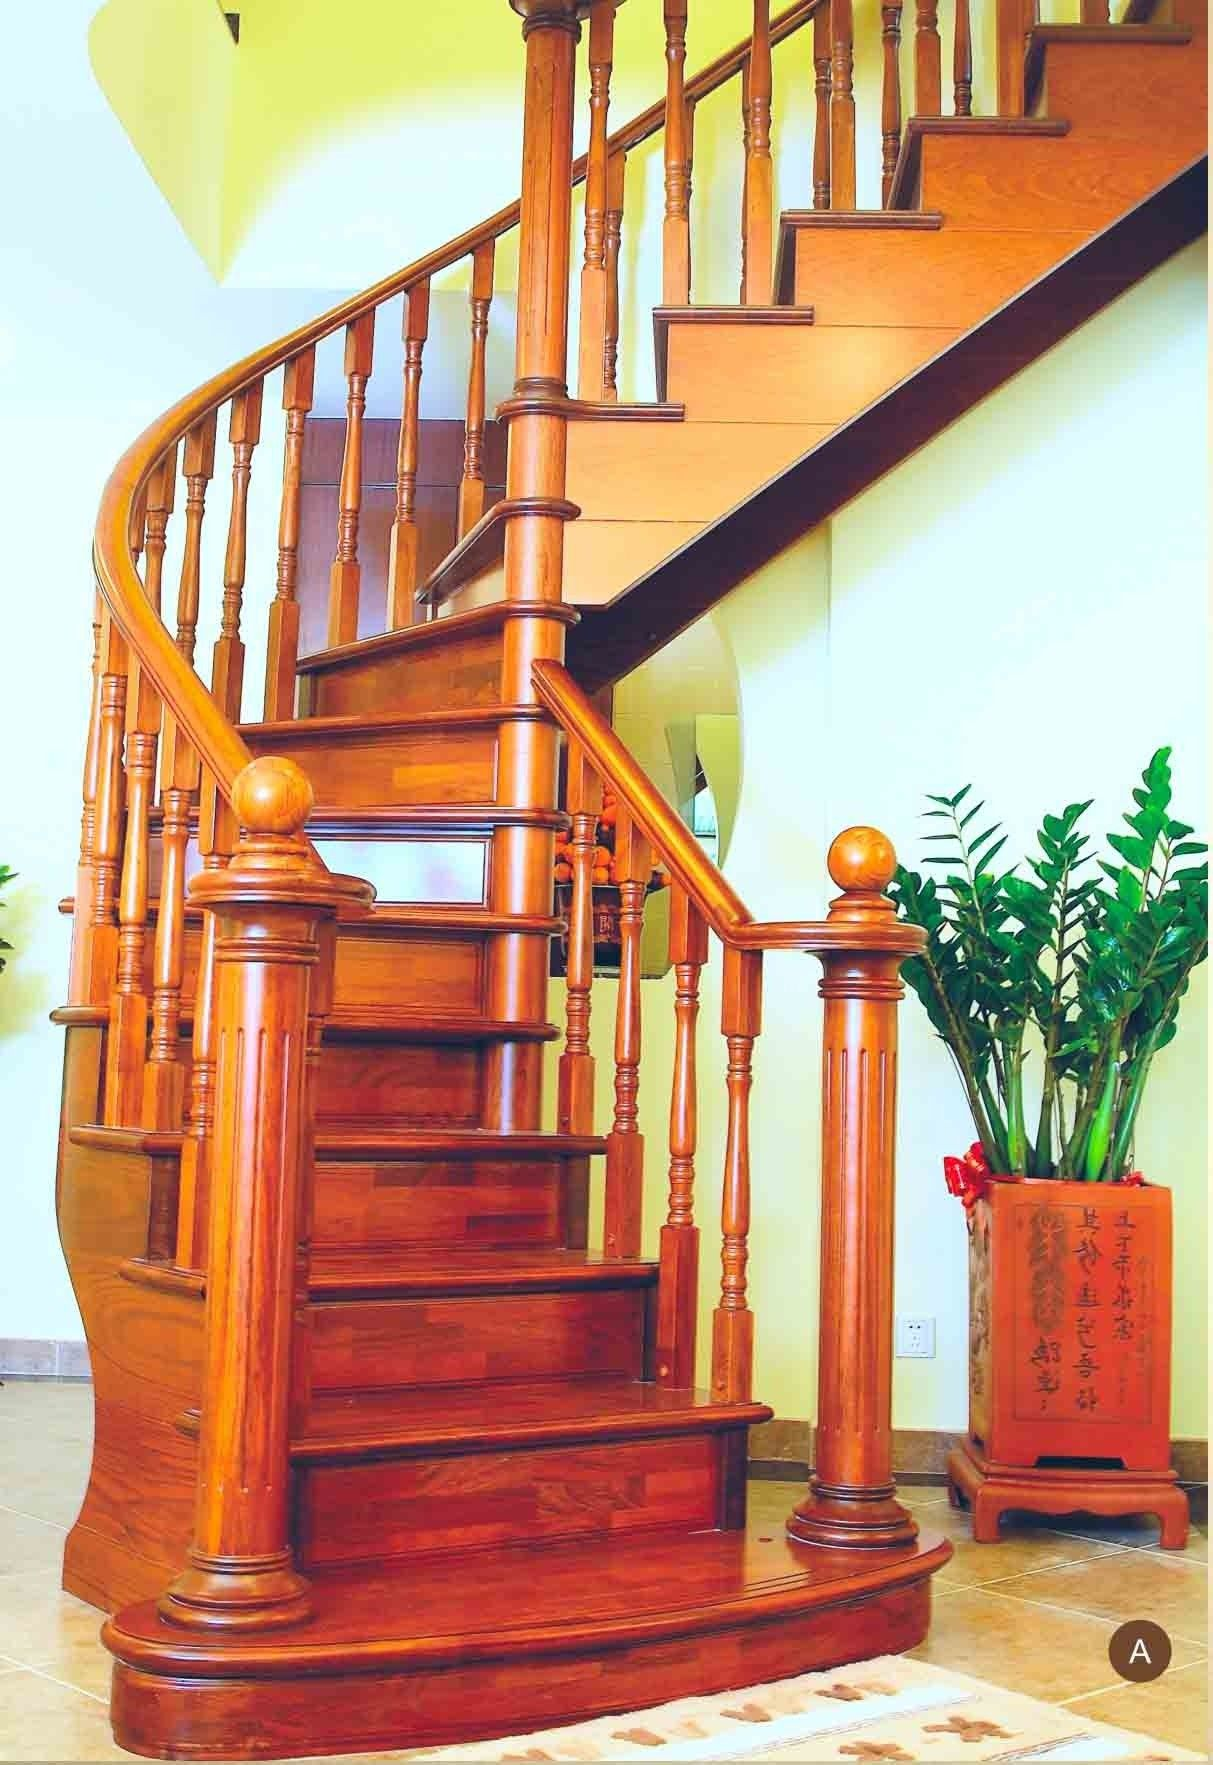 Used Metal Spiral Stairs Staircase For Sale Buy Exterior Stair   Circular Stairs For Sale   Rustic   Ornate   Interior   Shop   Slide